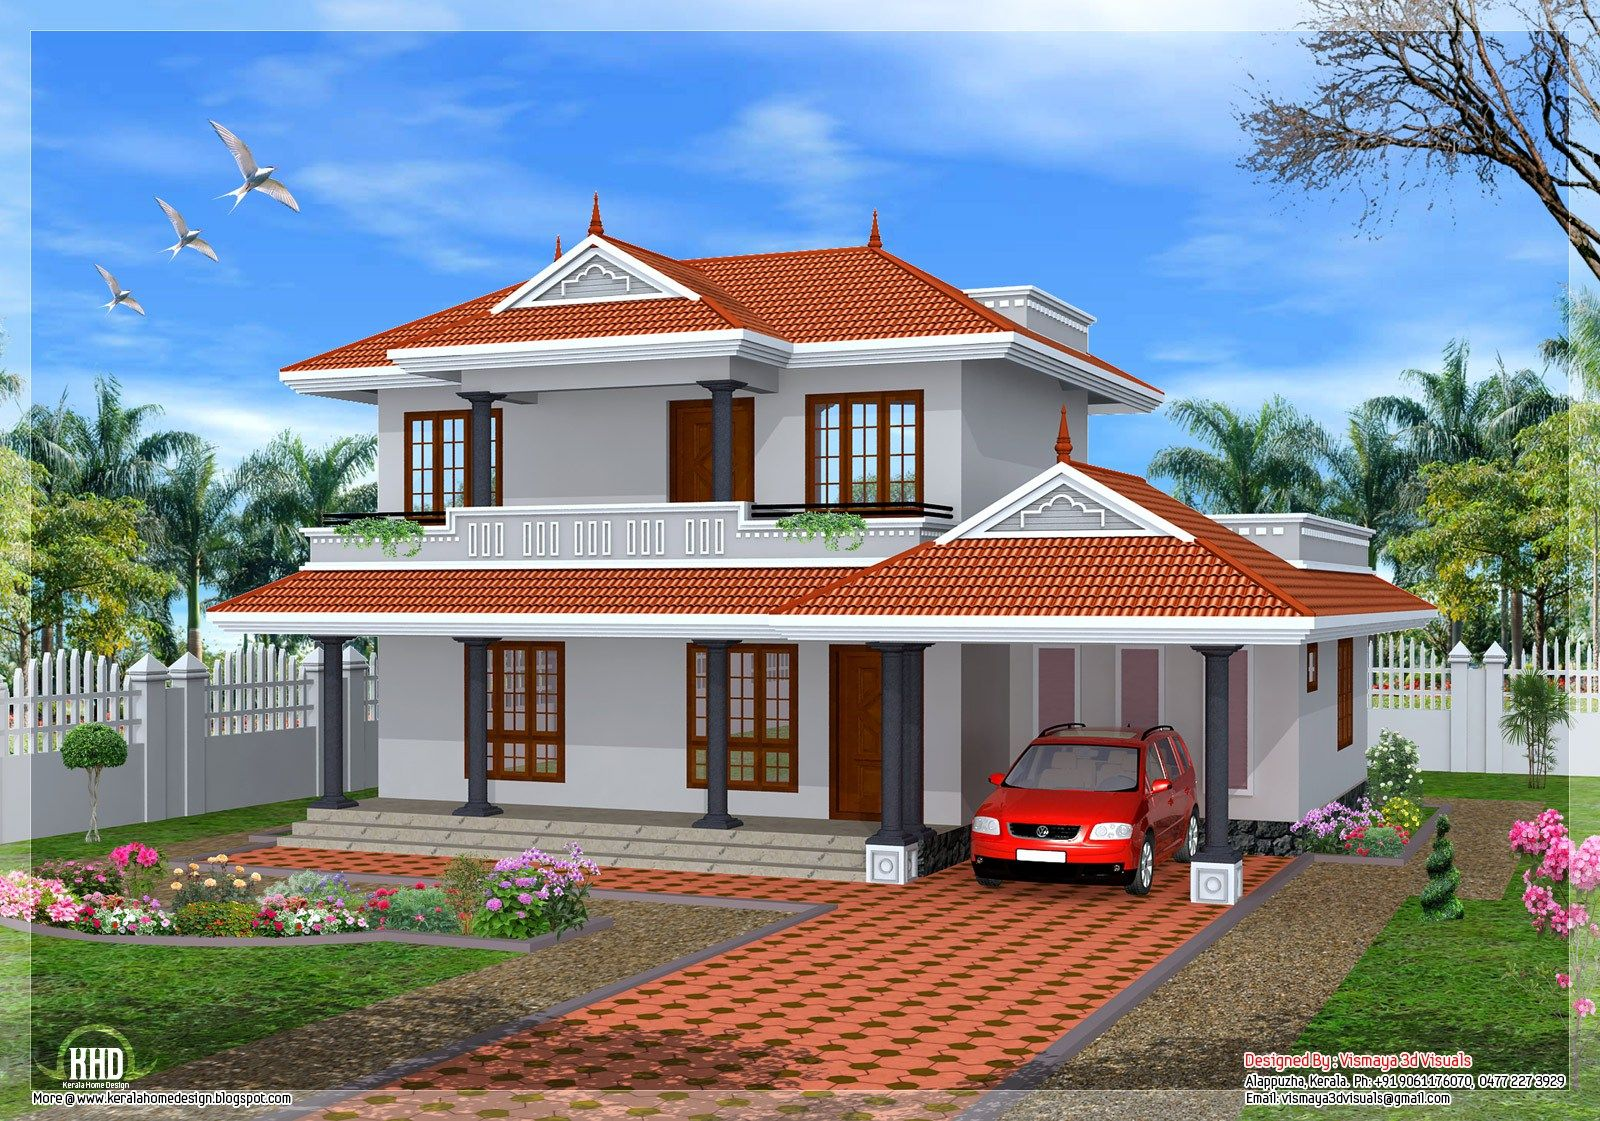 Plan sq ft kerala home design architecture house plans tattoo roof design plans hip roof garage plan house plans home designs